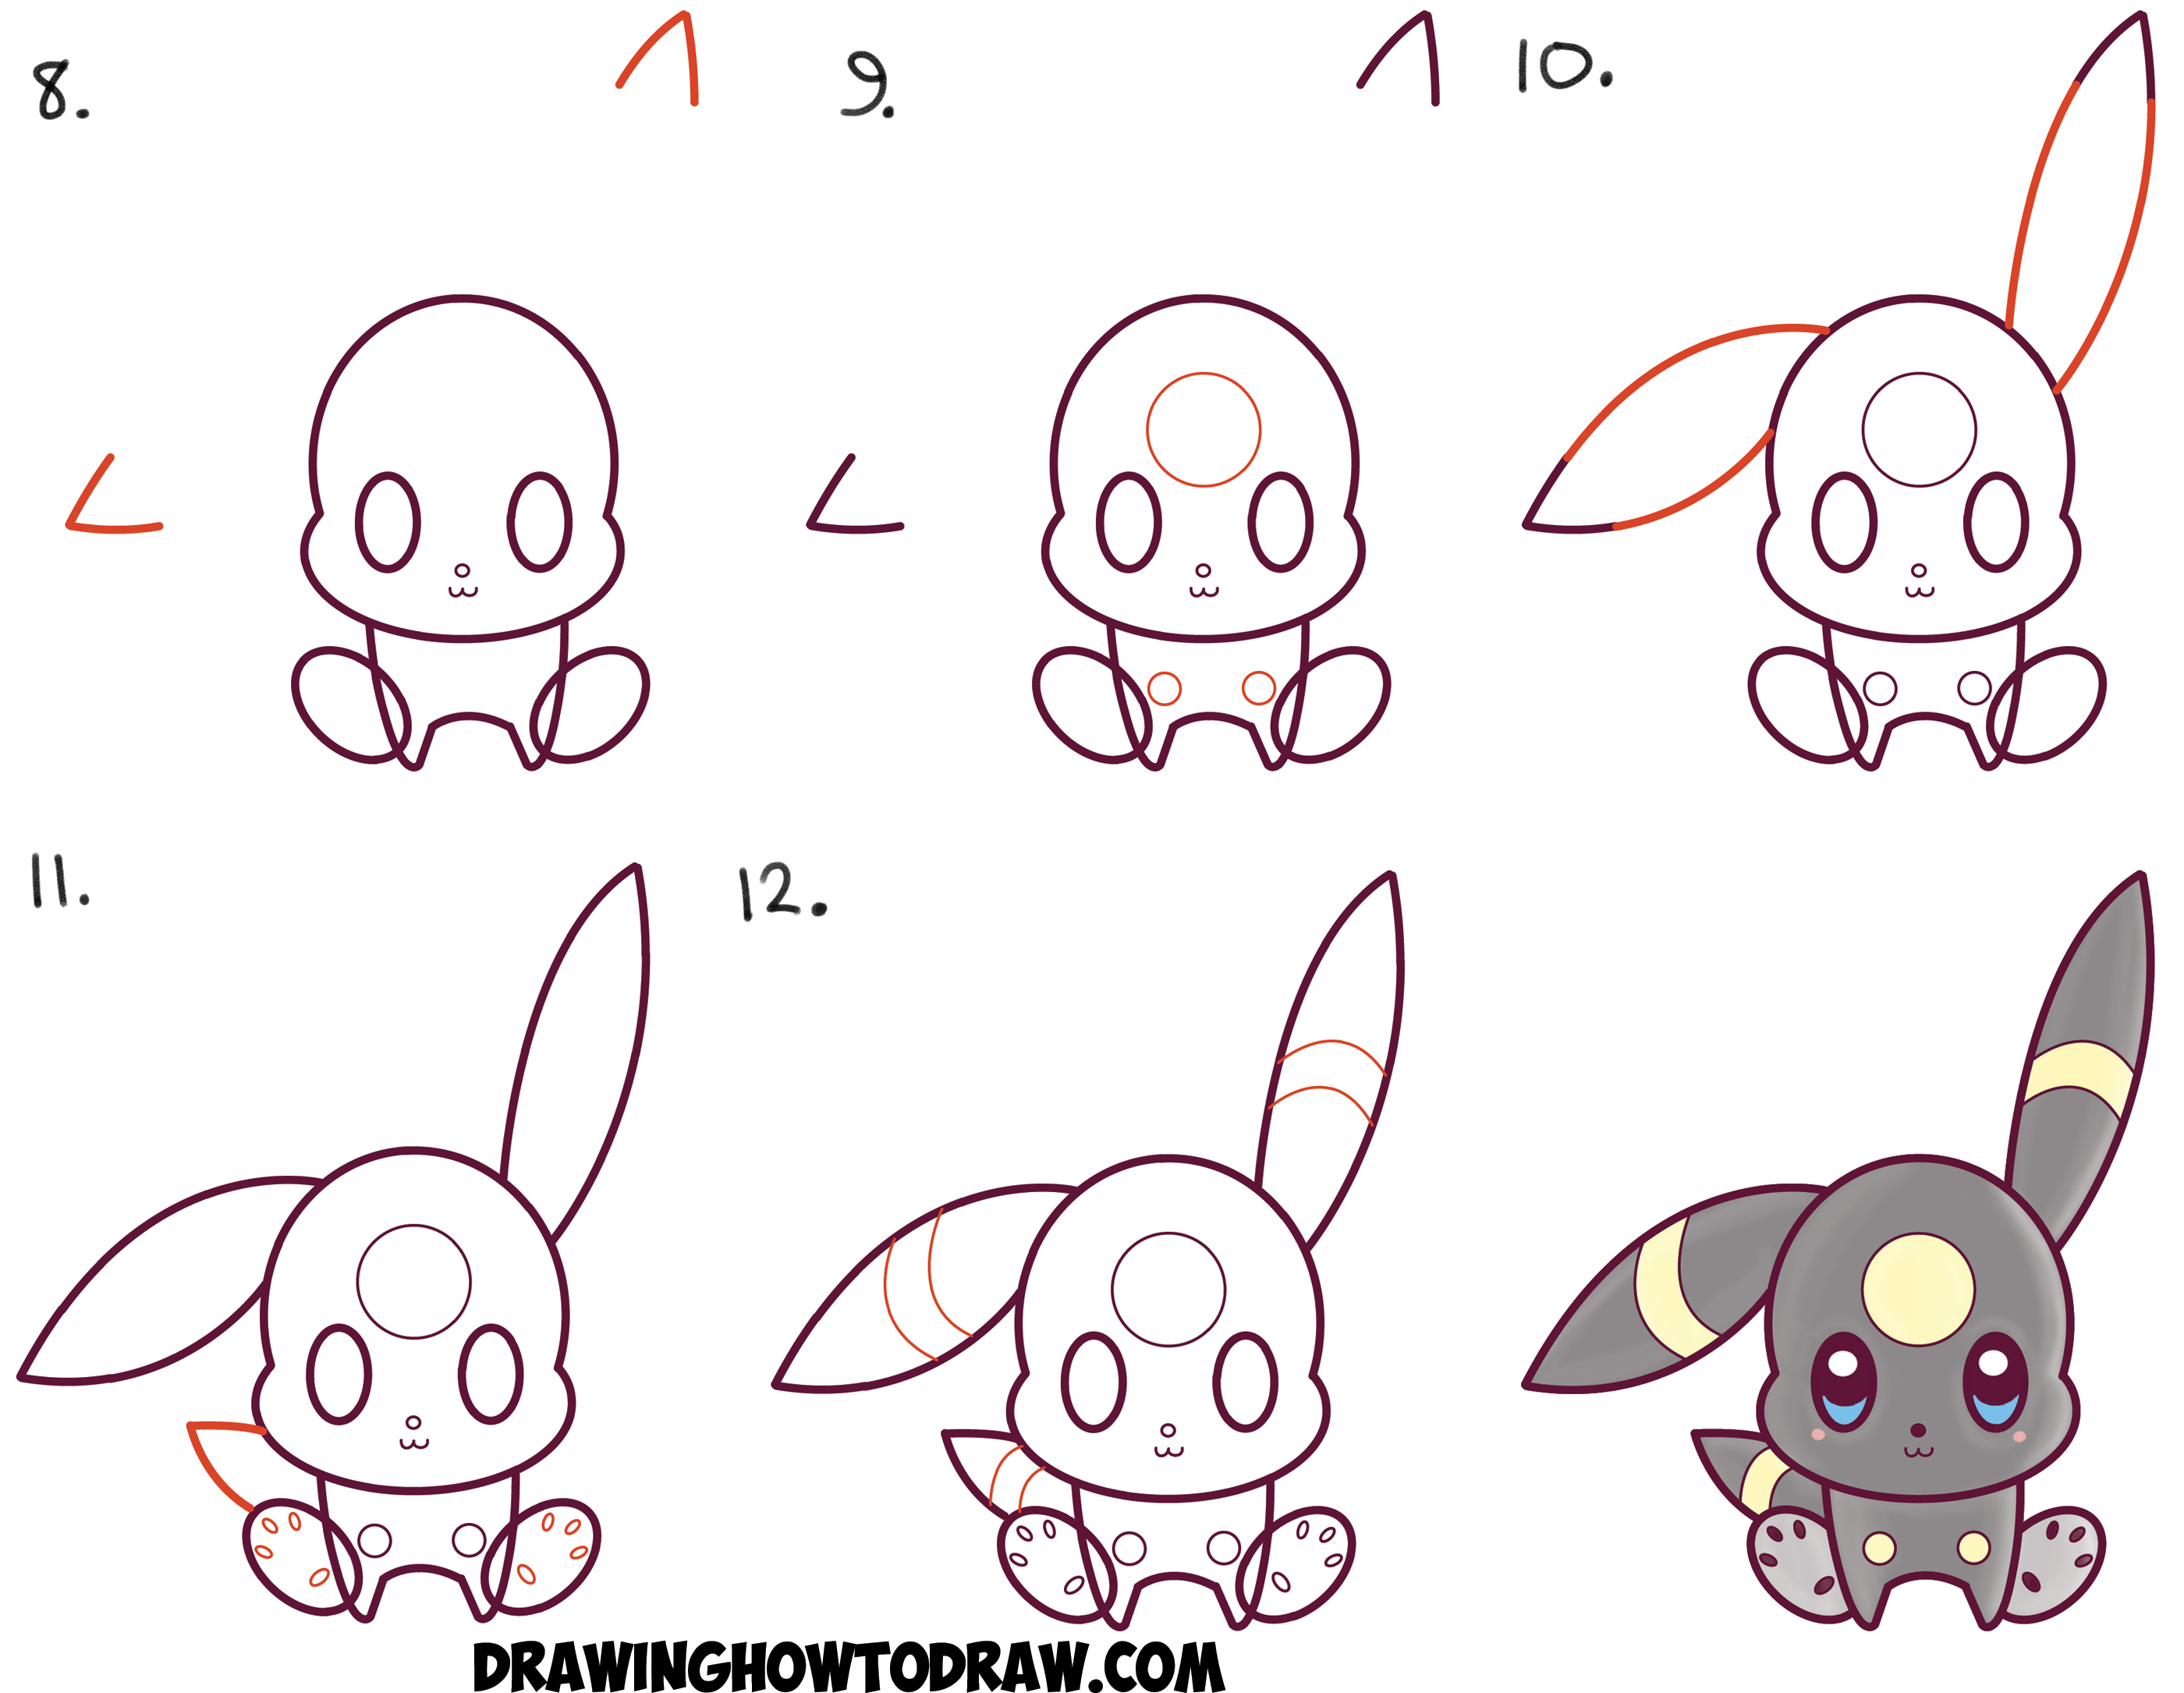 How to Draw Cute Kawaii Chibi Umbreon from Pokemon Easy ...